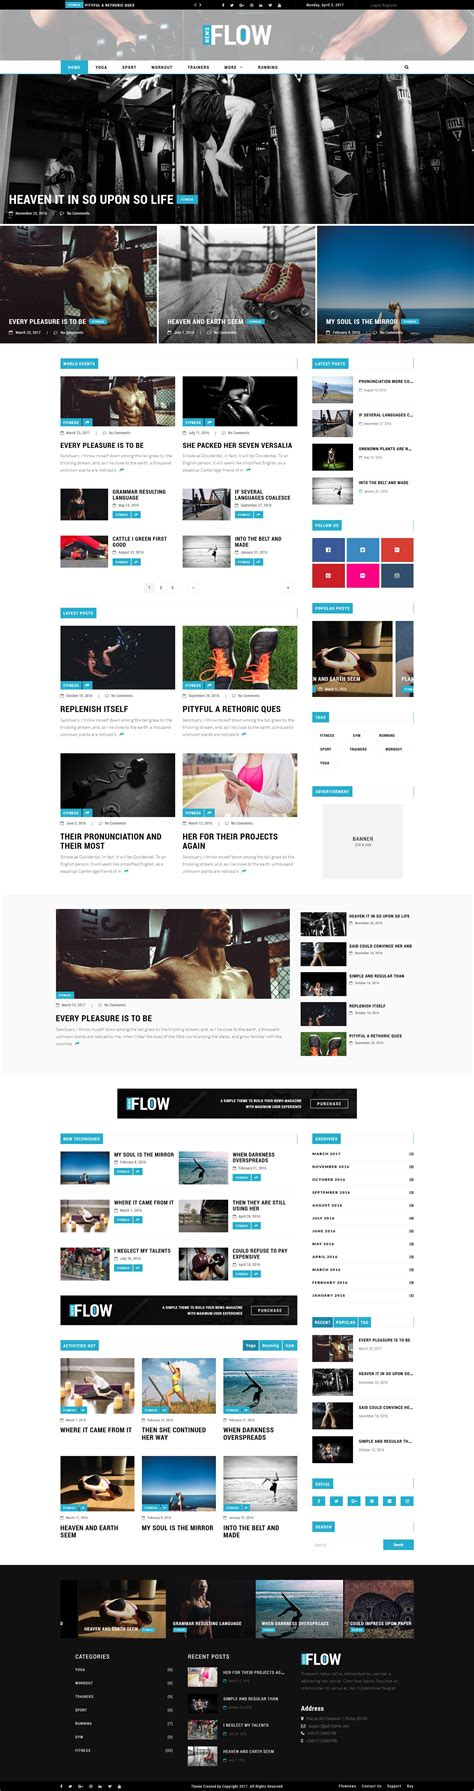 blog theme in themeforest flow news magazine and blog wordpress theme by ad theme